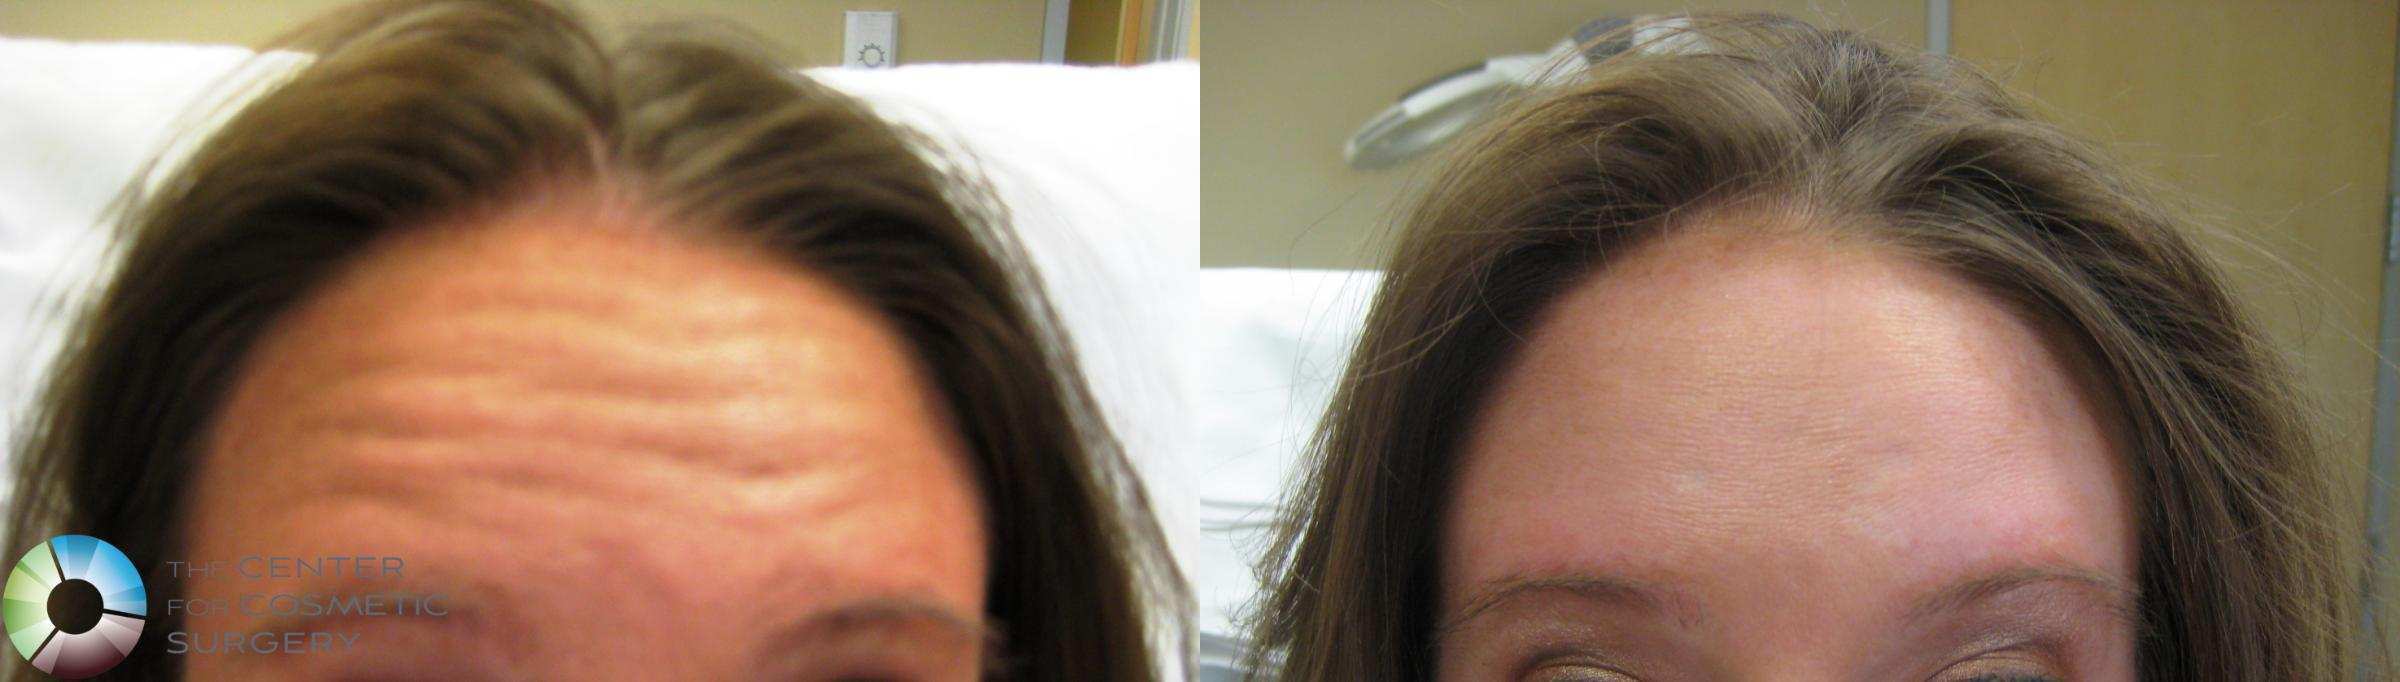 BOTOX® Cosmetic Case 281 Before & After View #1 | Golden, CO | The Center for Cosmetic Surgery